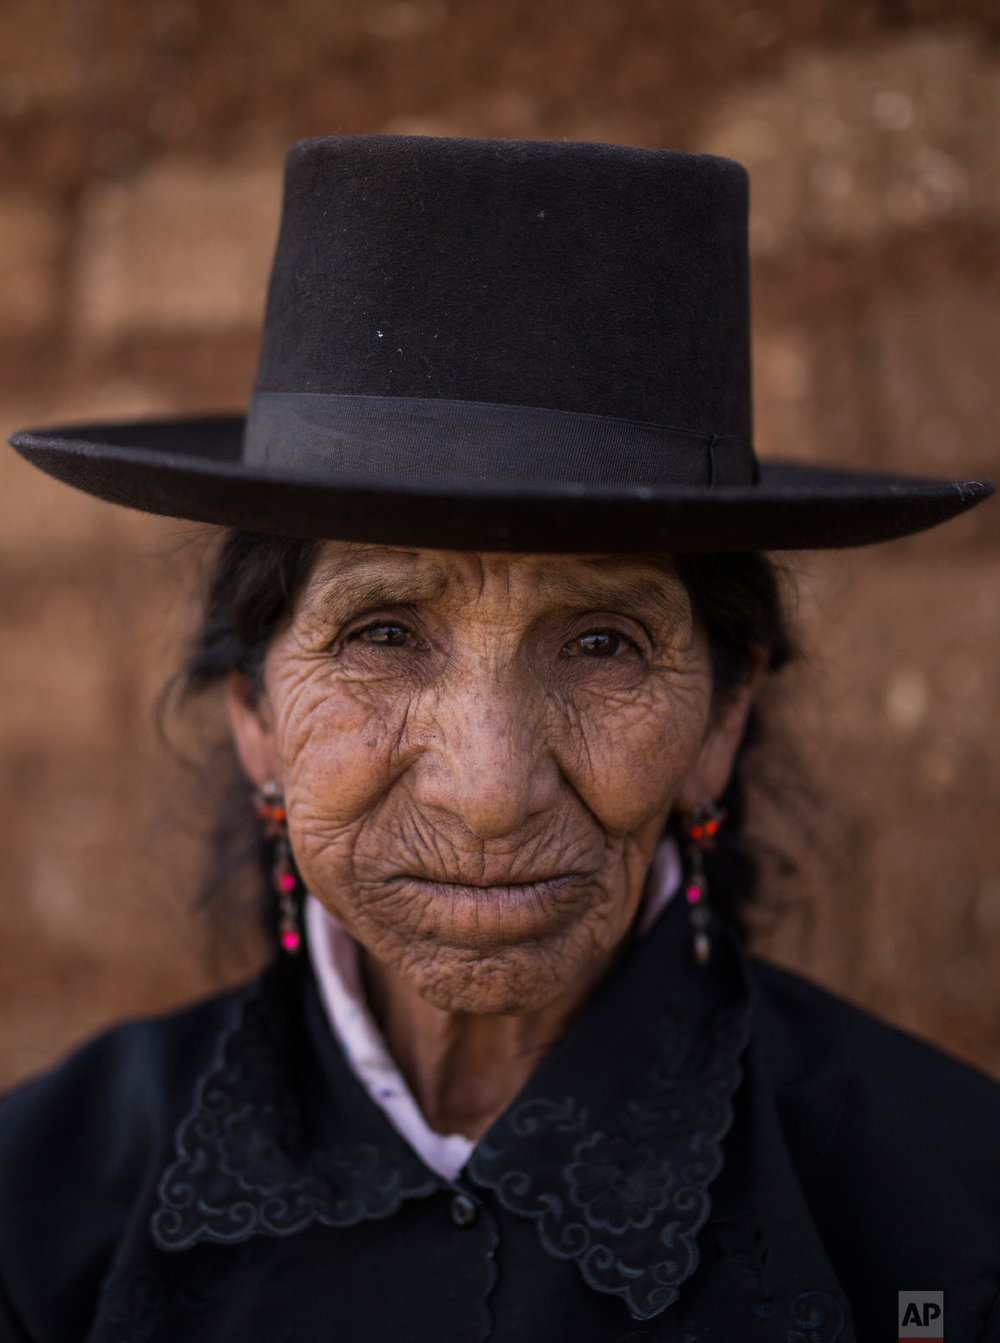 In this Aug. 15, 2018 photo, Maria Magdalena Espinosa, whose husband Daniel Tineo was  killed by the Shining Path guerrillas in 1984, poses for a portrait outside her home in Tantana, in Peru's Ayacucho province. (AP Photo/Rodrigo Abd)